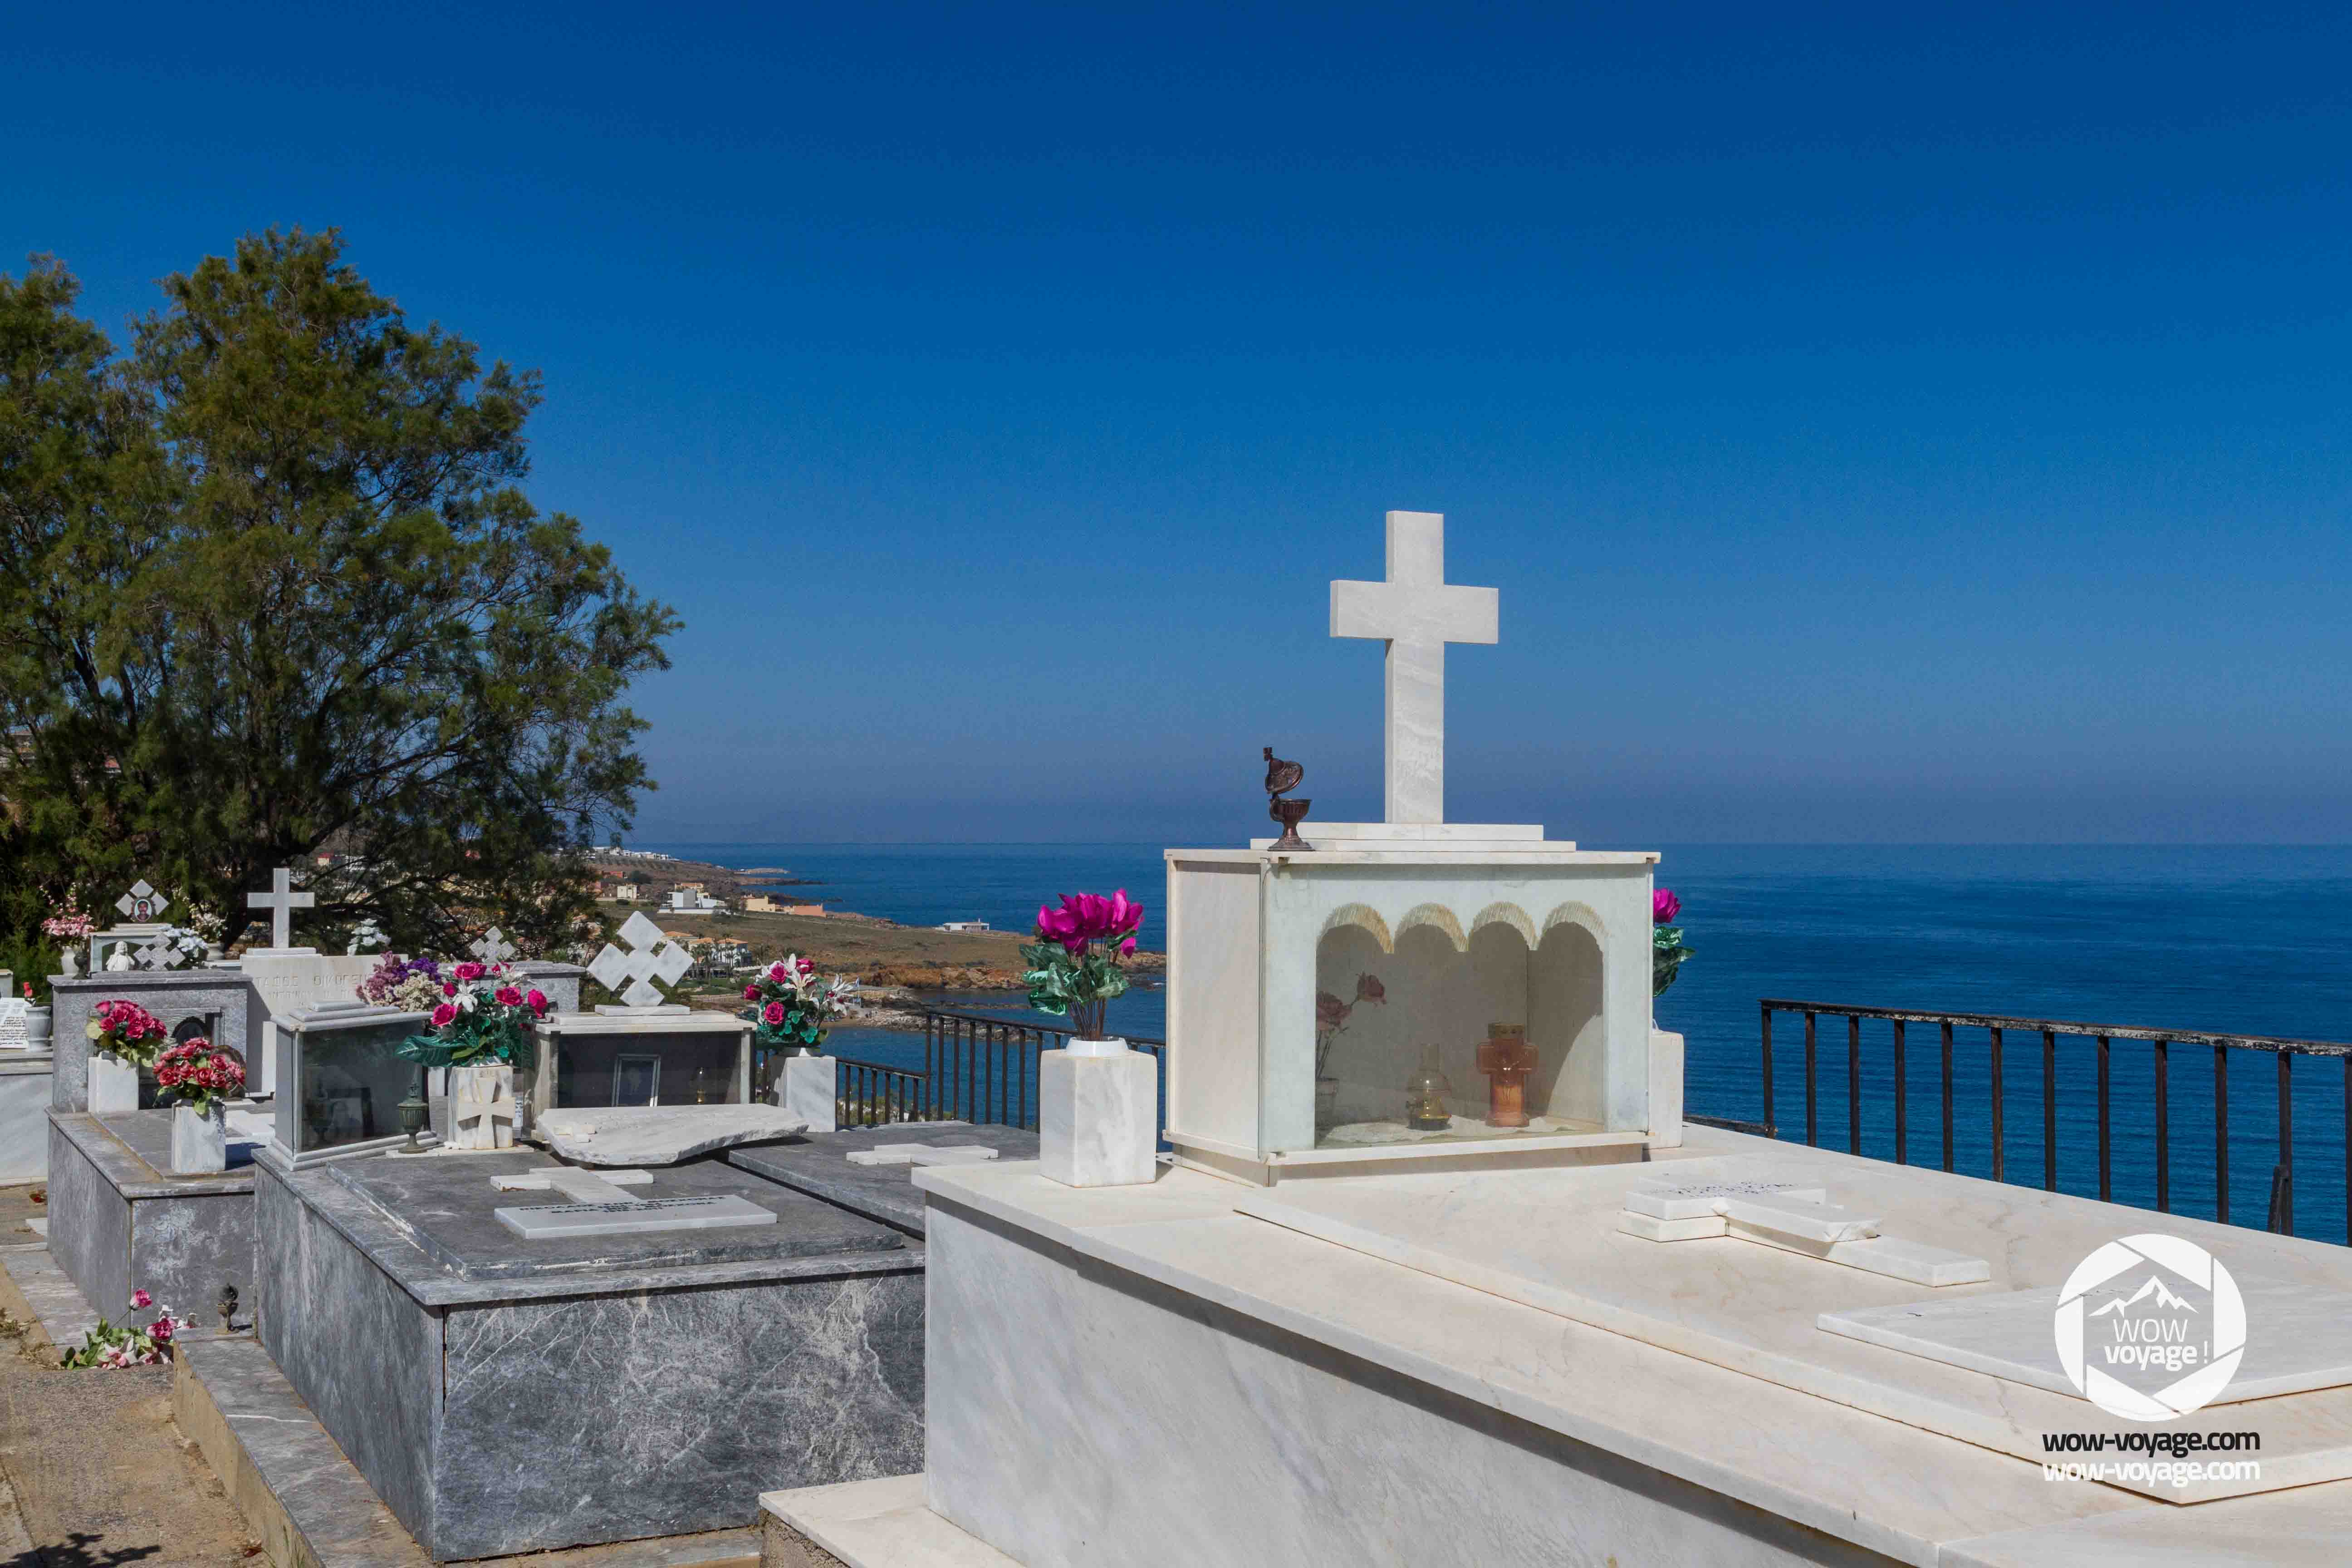 falls in the Panormo cemetery, overlooking the sea and the village of Panormo,